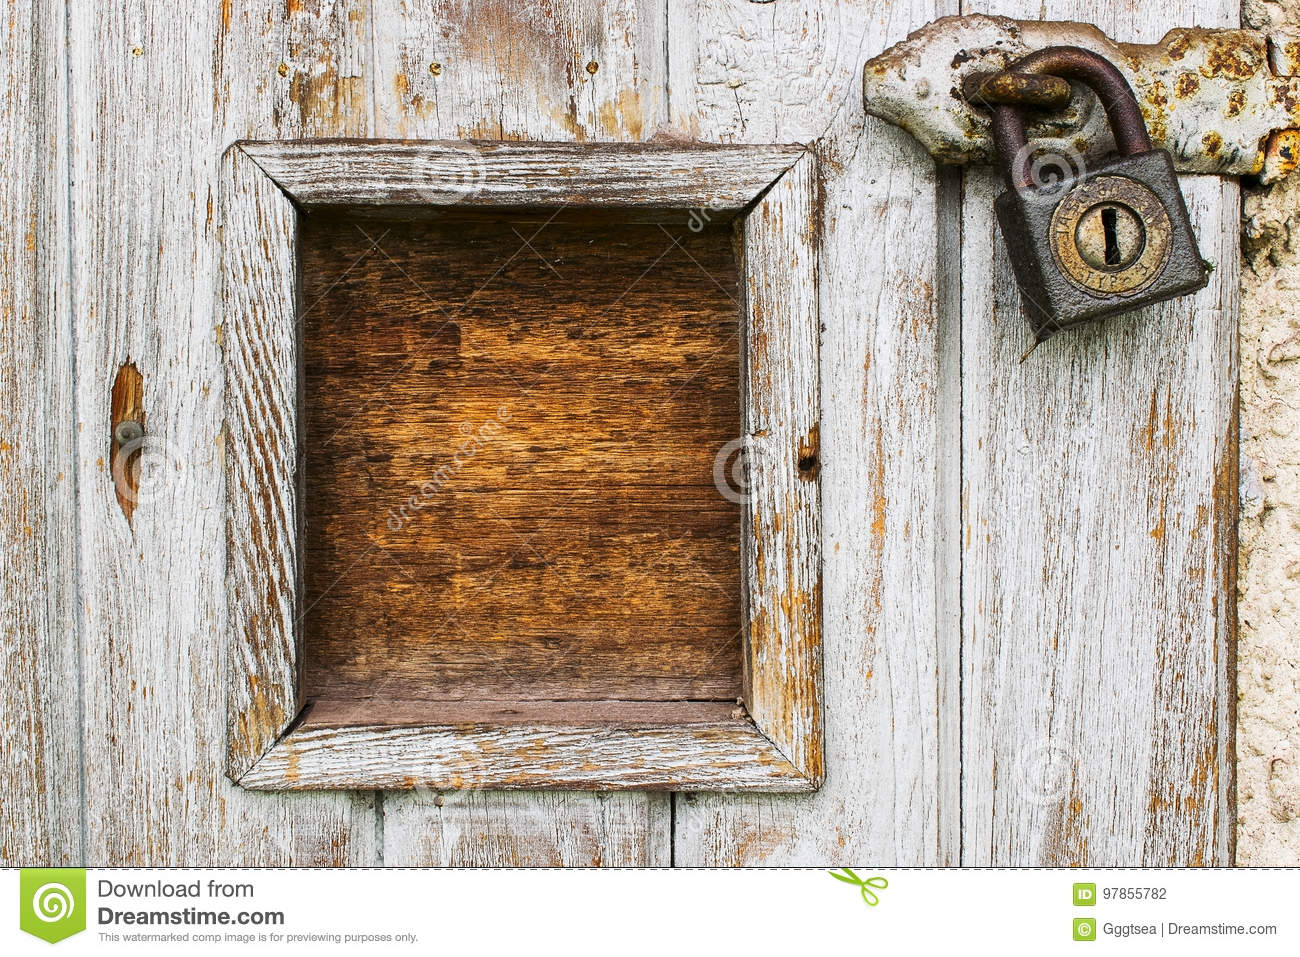 Wooden door with padlock and frame